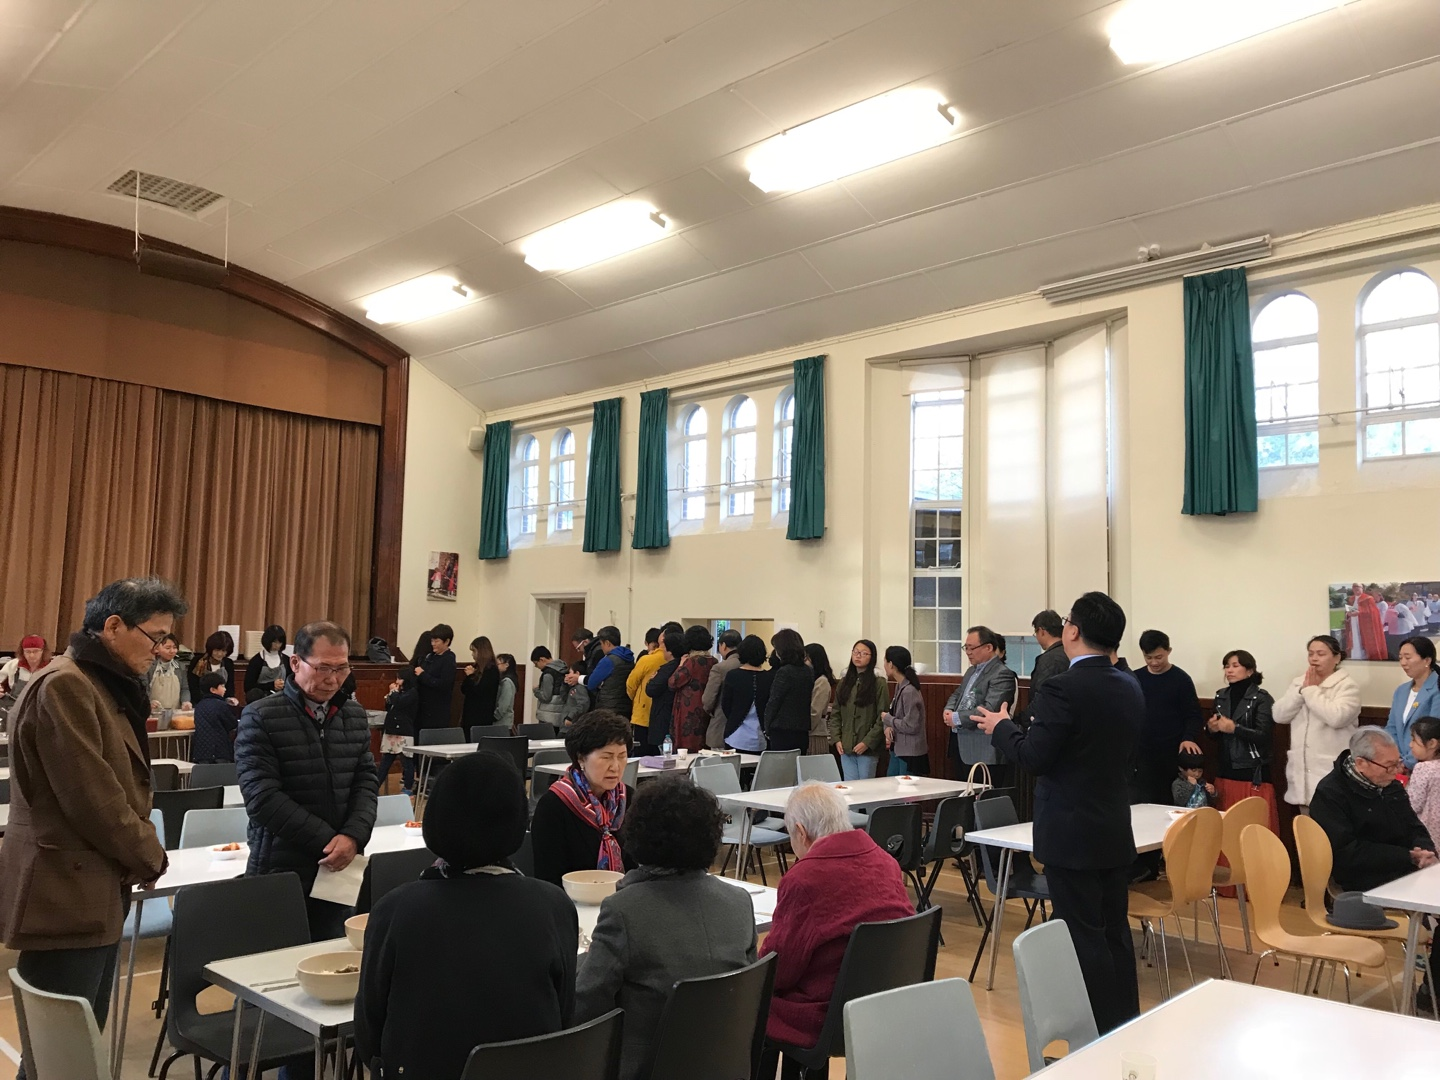 6D441DB7-282E-4263-BE99-0CE6F4FF1DBC.jpeg